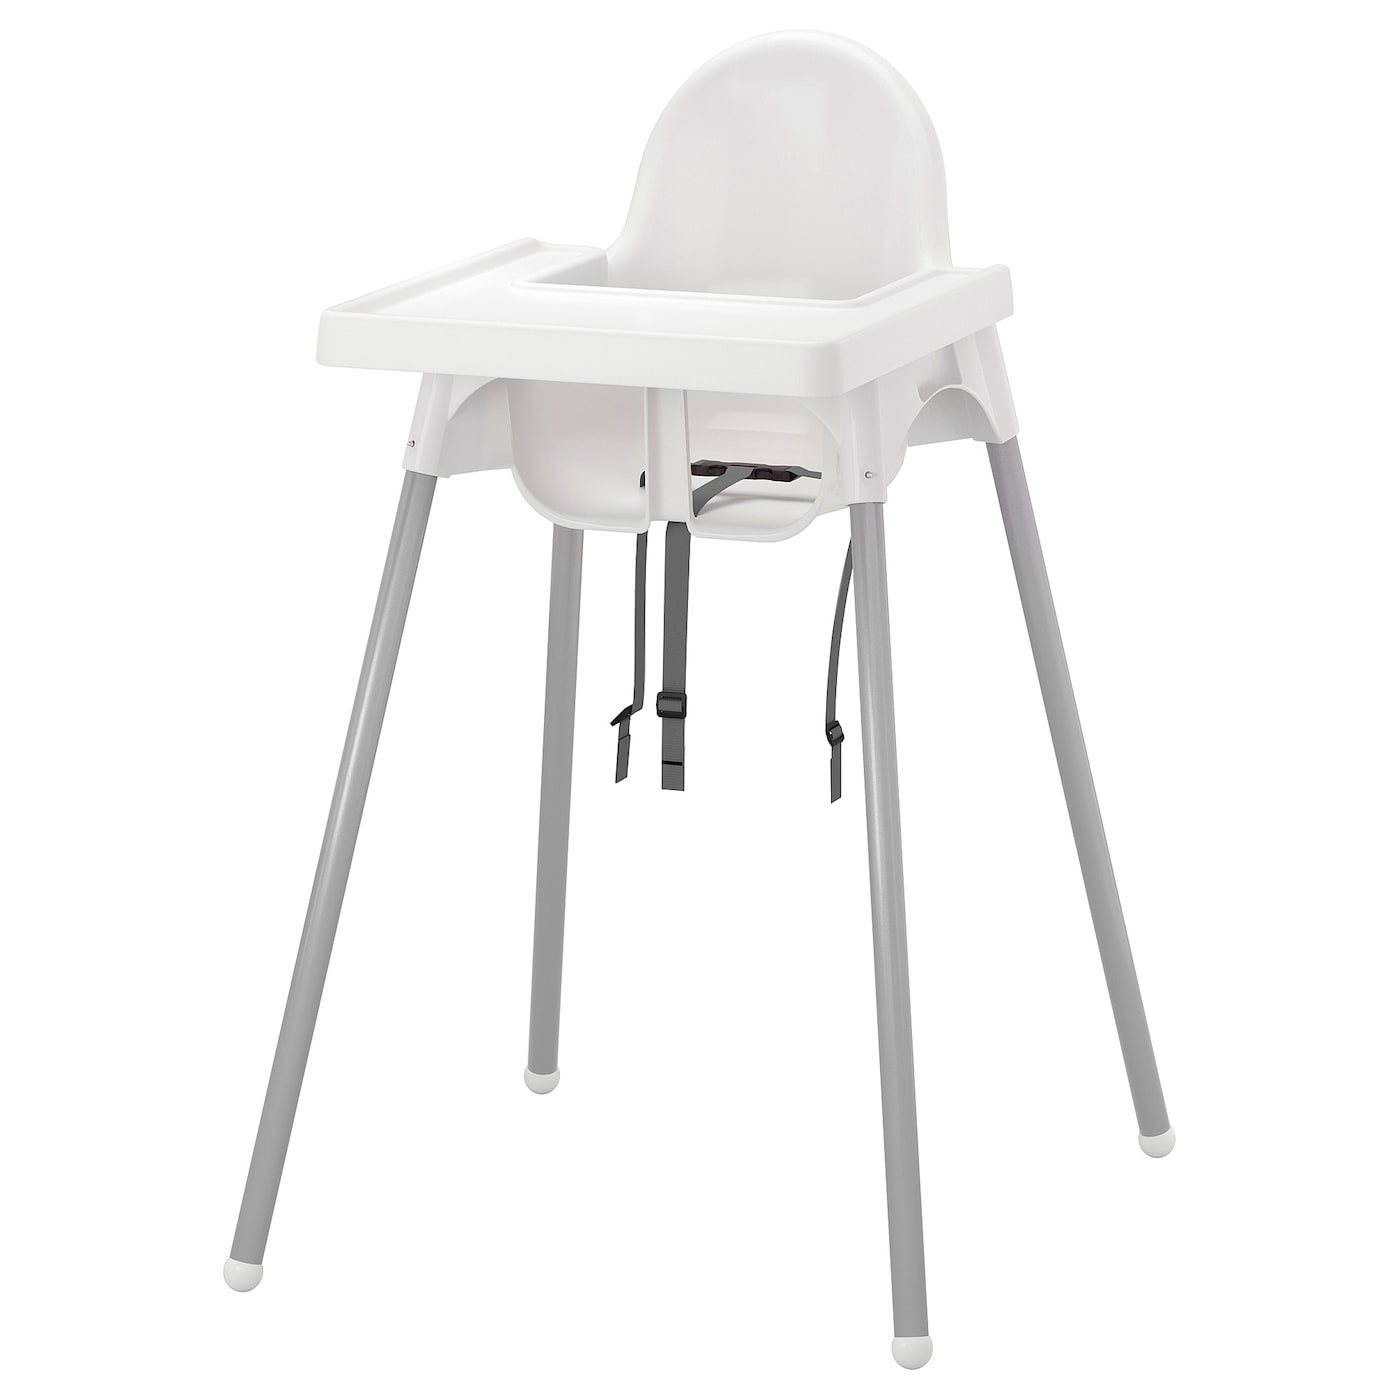 Antilop High Chair With Tray White Silver Color Silver Color Ikea